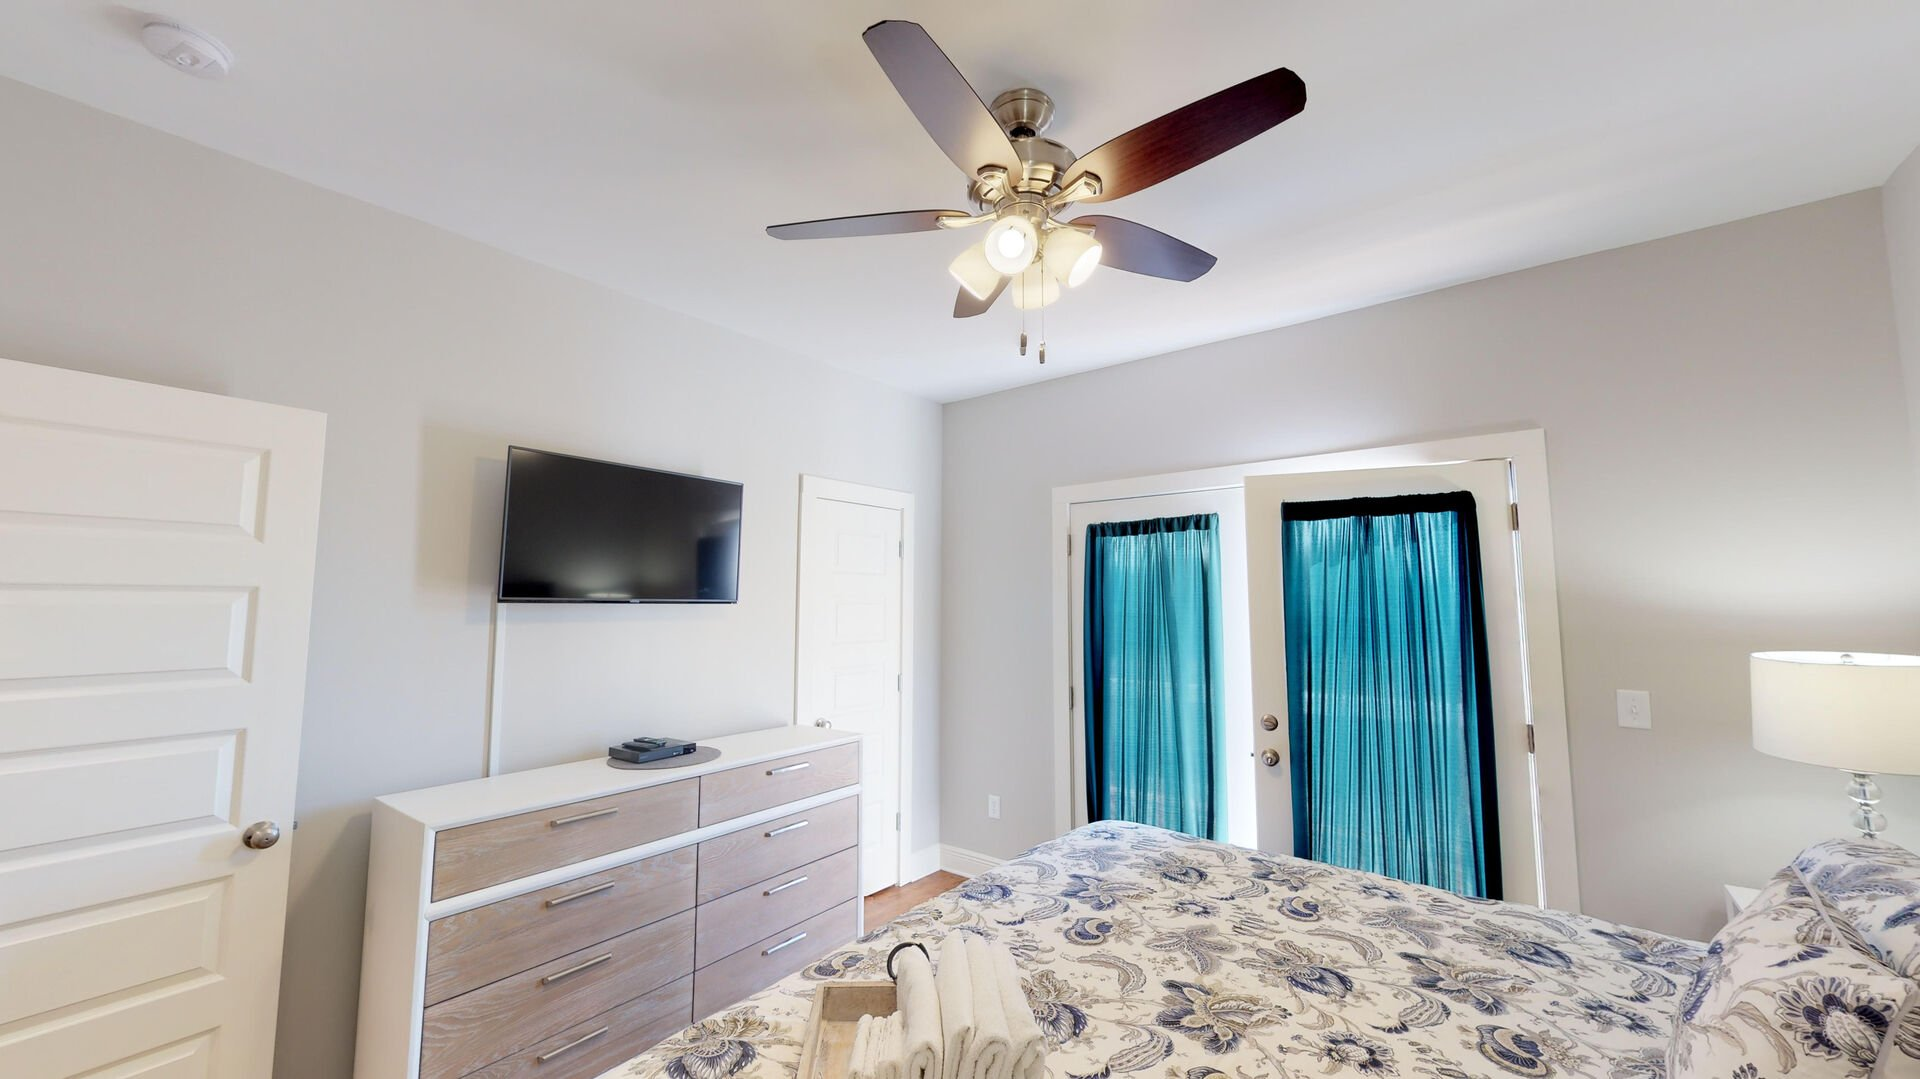 Large Bed, Door to the Balcony, TV,  Drawer Dresser, and Ceiling Fan.